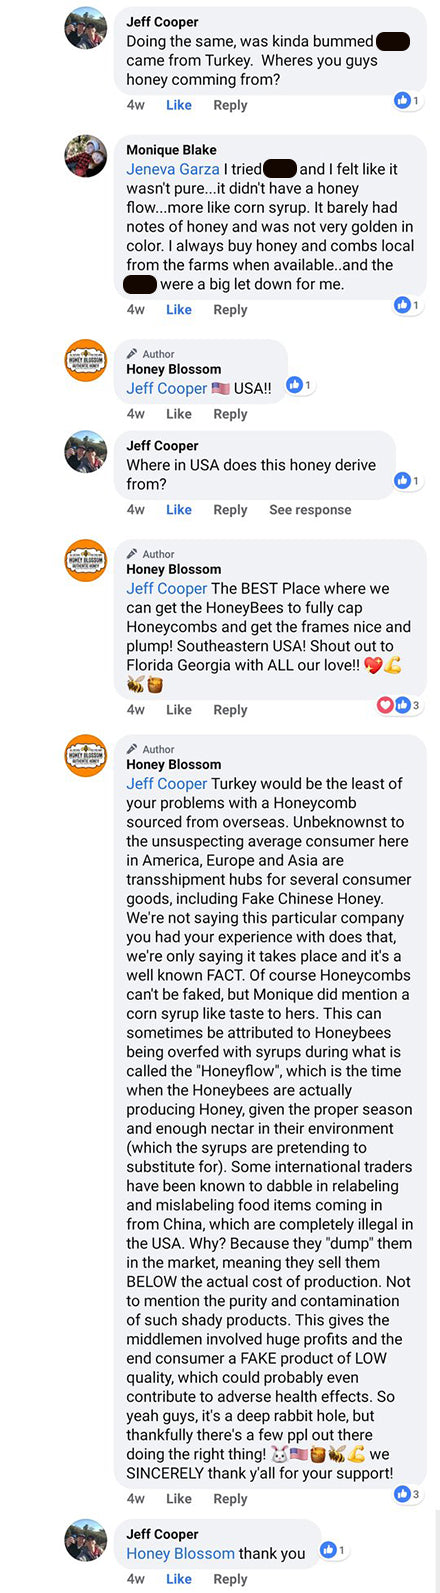 """Chat from a facebook post that says: Jeff Cooper """"Where in USA does this honey derive from?"""". Honey Blossom: """"The best place where we can get the honeybees to fully cap honeycombs and get the frames nice and plump! Southeastern USA! shout out to Florida Georgia with all our love!"""